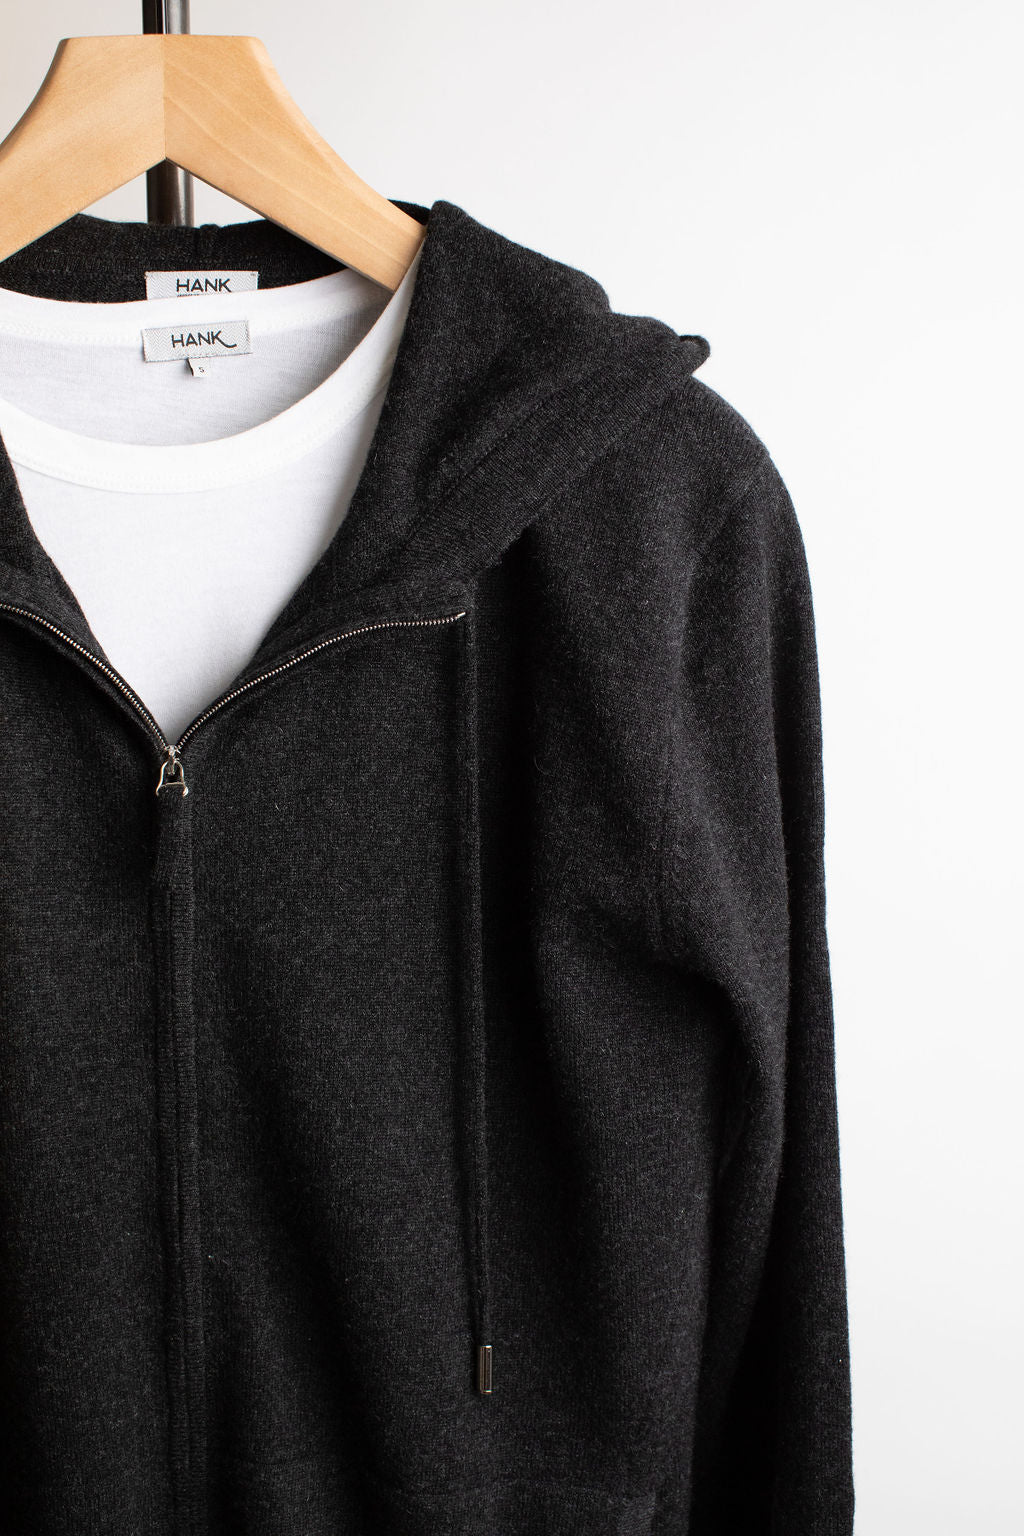 Hank-Perfect-Cashmere-Latham-Zip-Hoodie-Charcoal